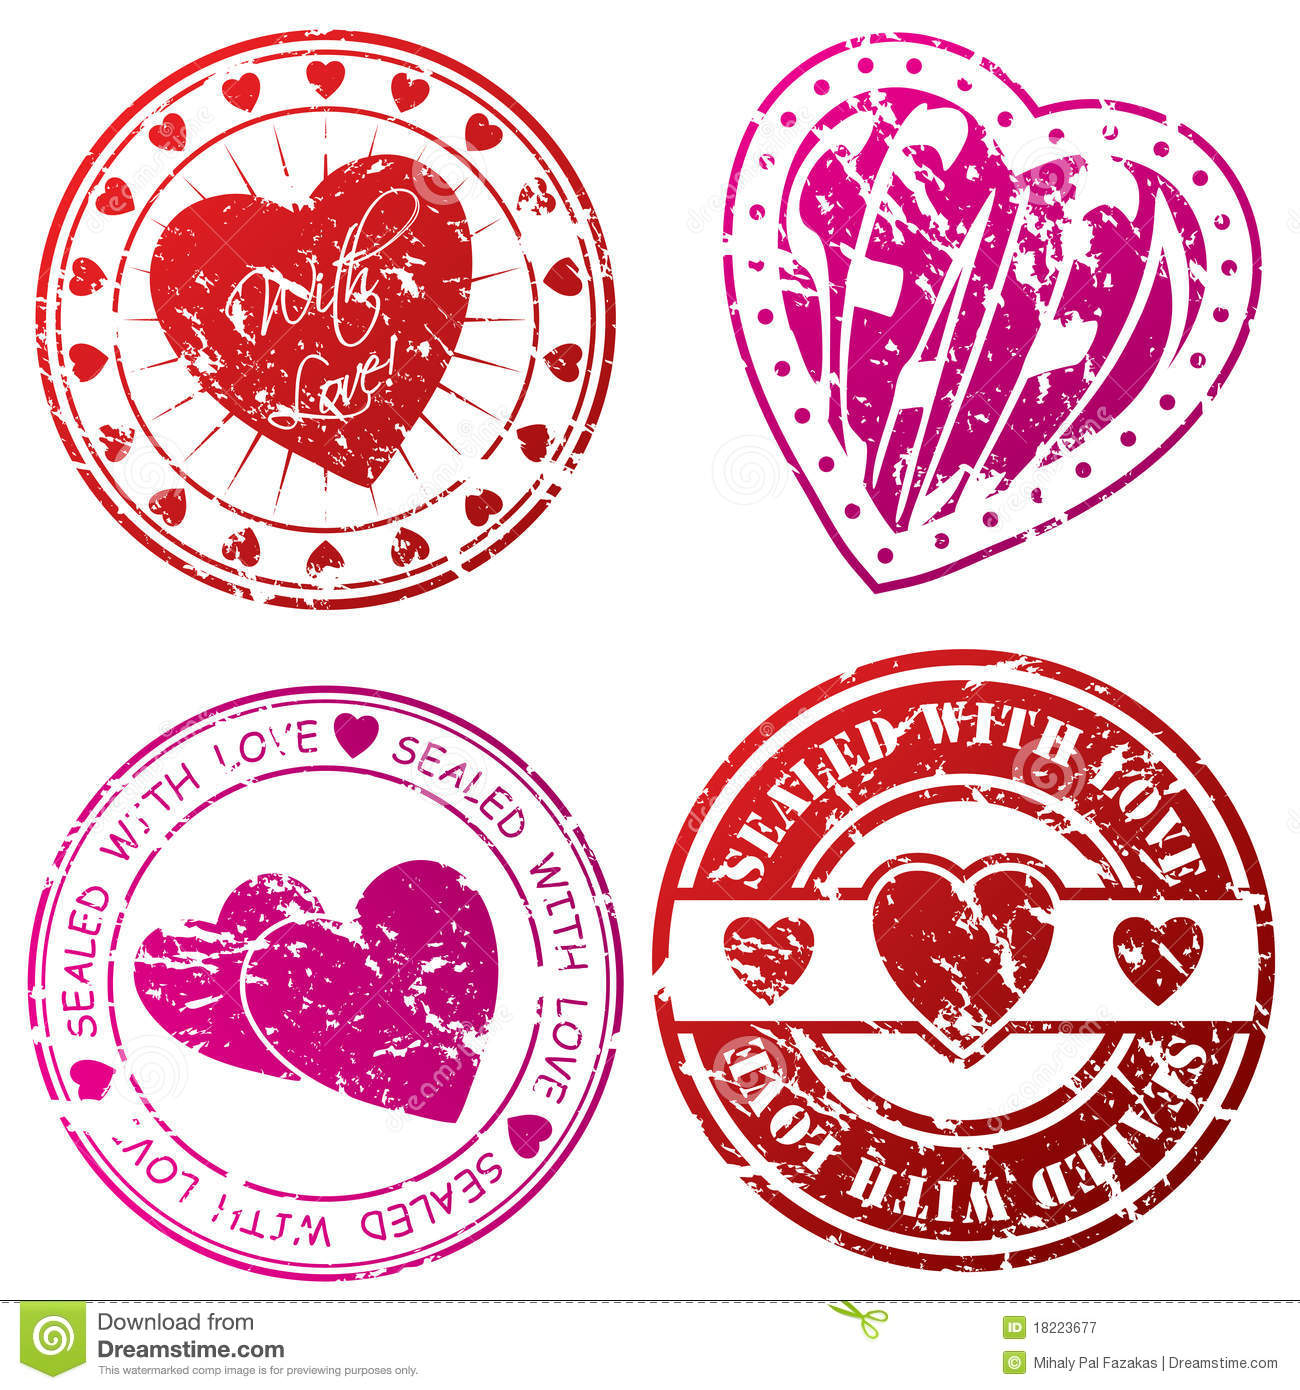 Royalty Free Stock Photography: Love stamps for love letters